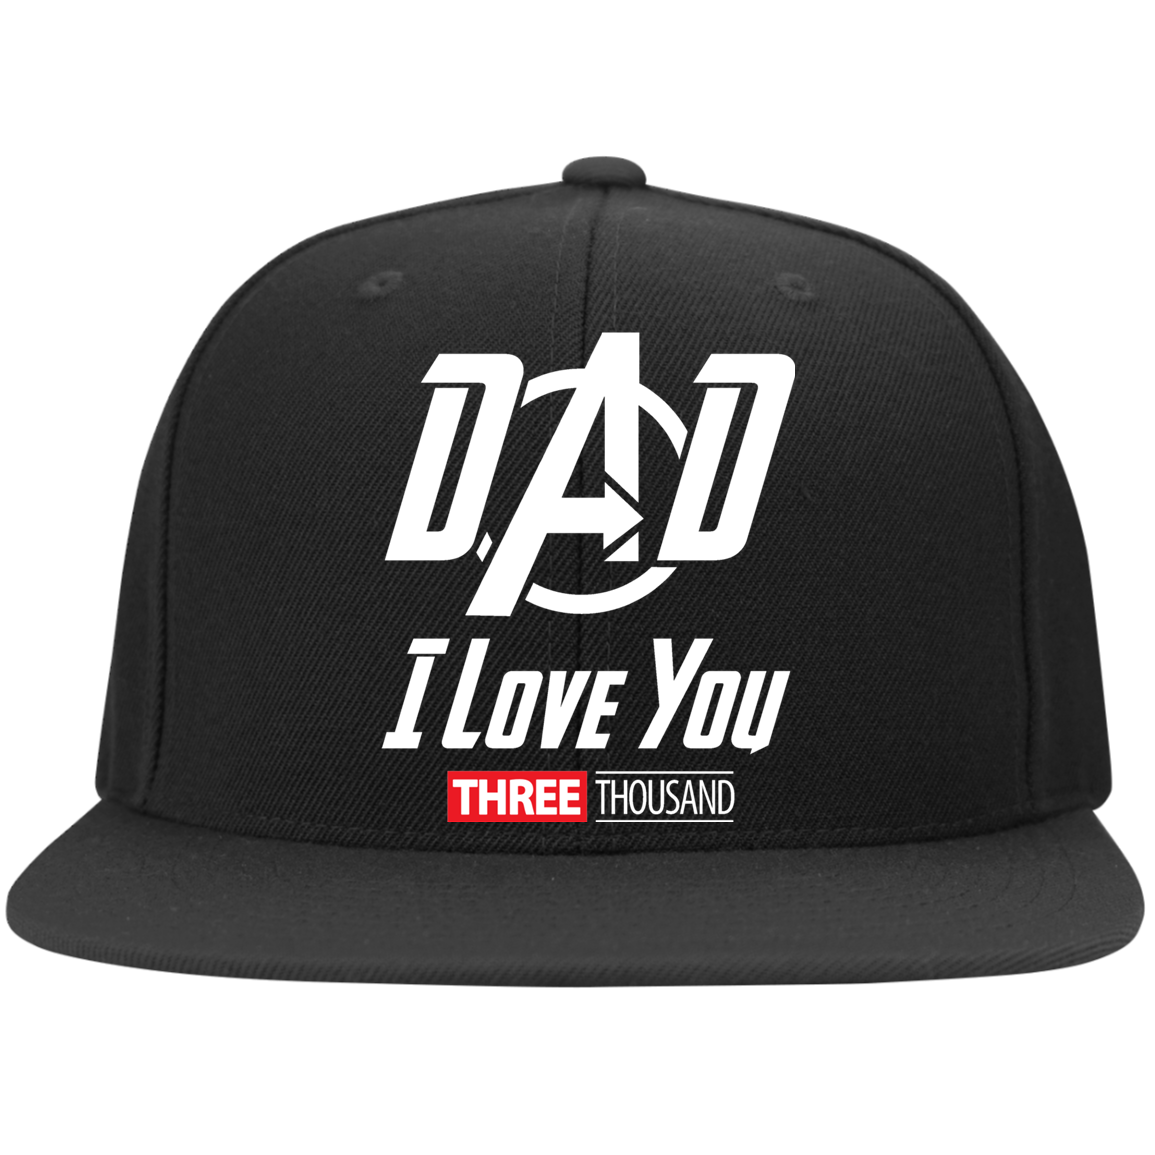 Dad I Love You Three Thousand - Embroidered Flat Bill Twill Flexfit Cap